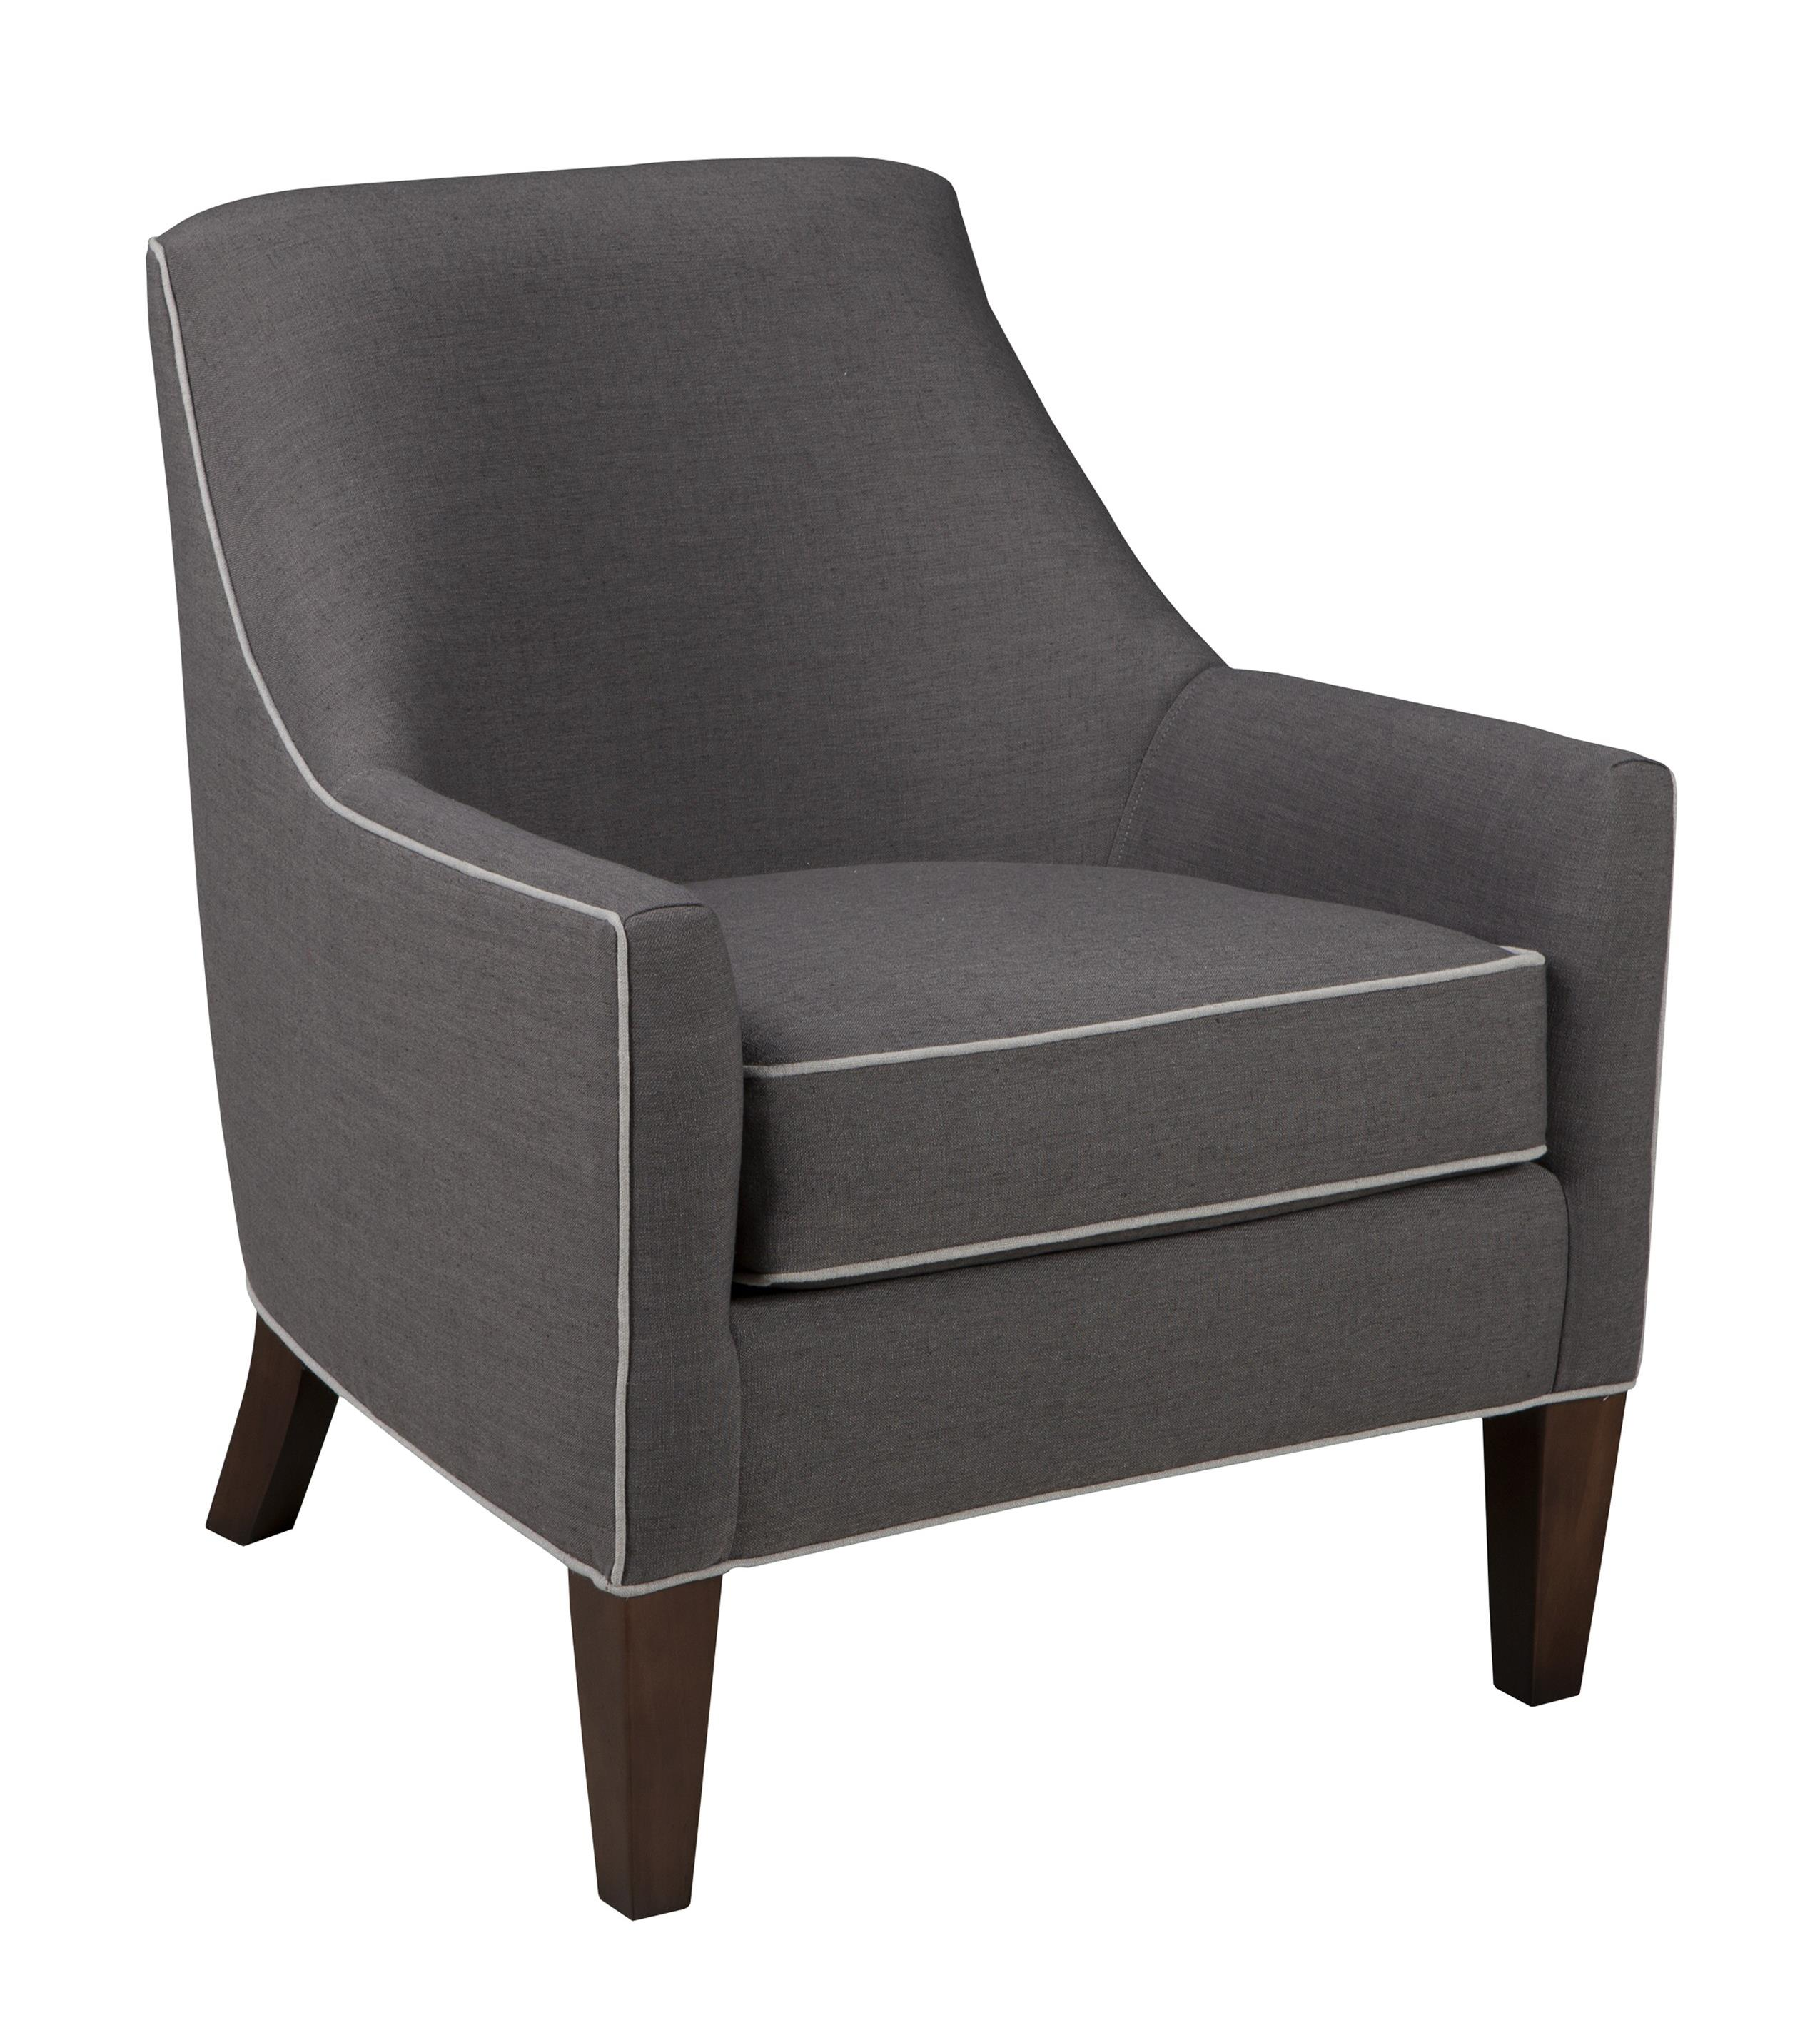 Craftmaster Accent Chairs Chair - Item Number: 048710-SENSU-45